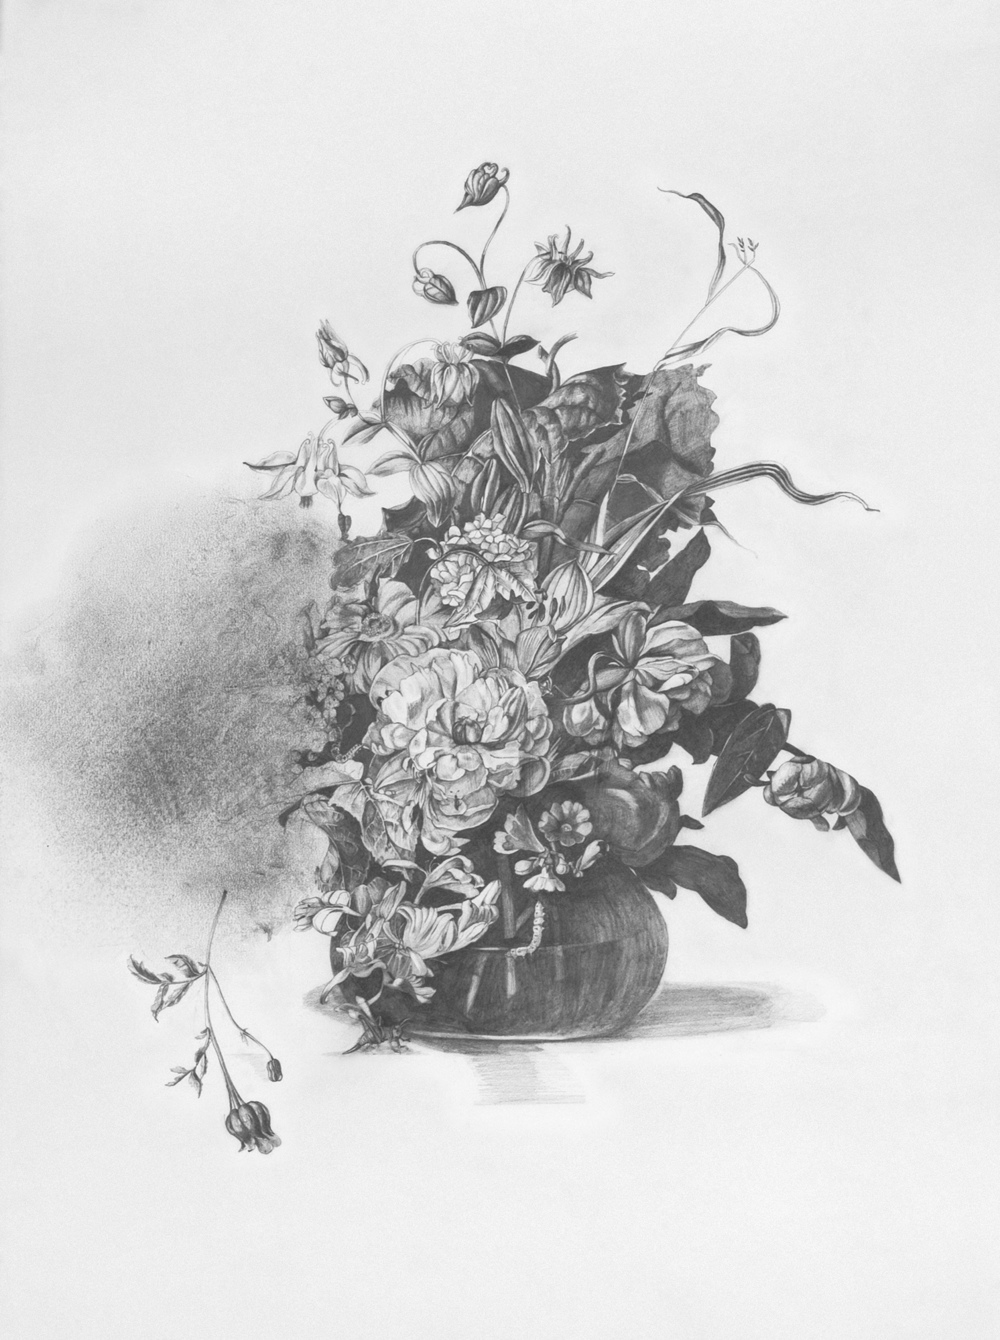 Untitled (Ruysch)